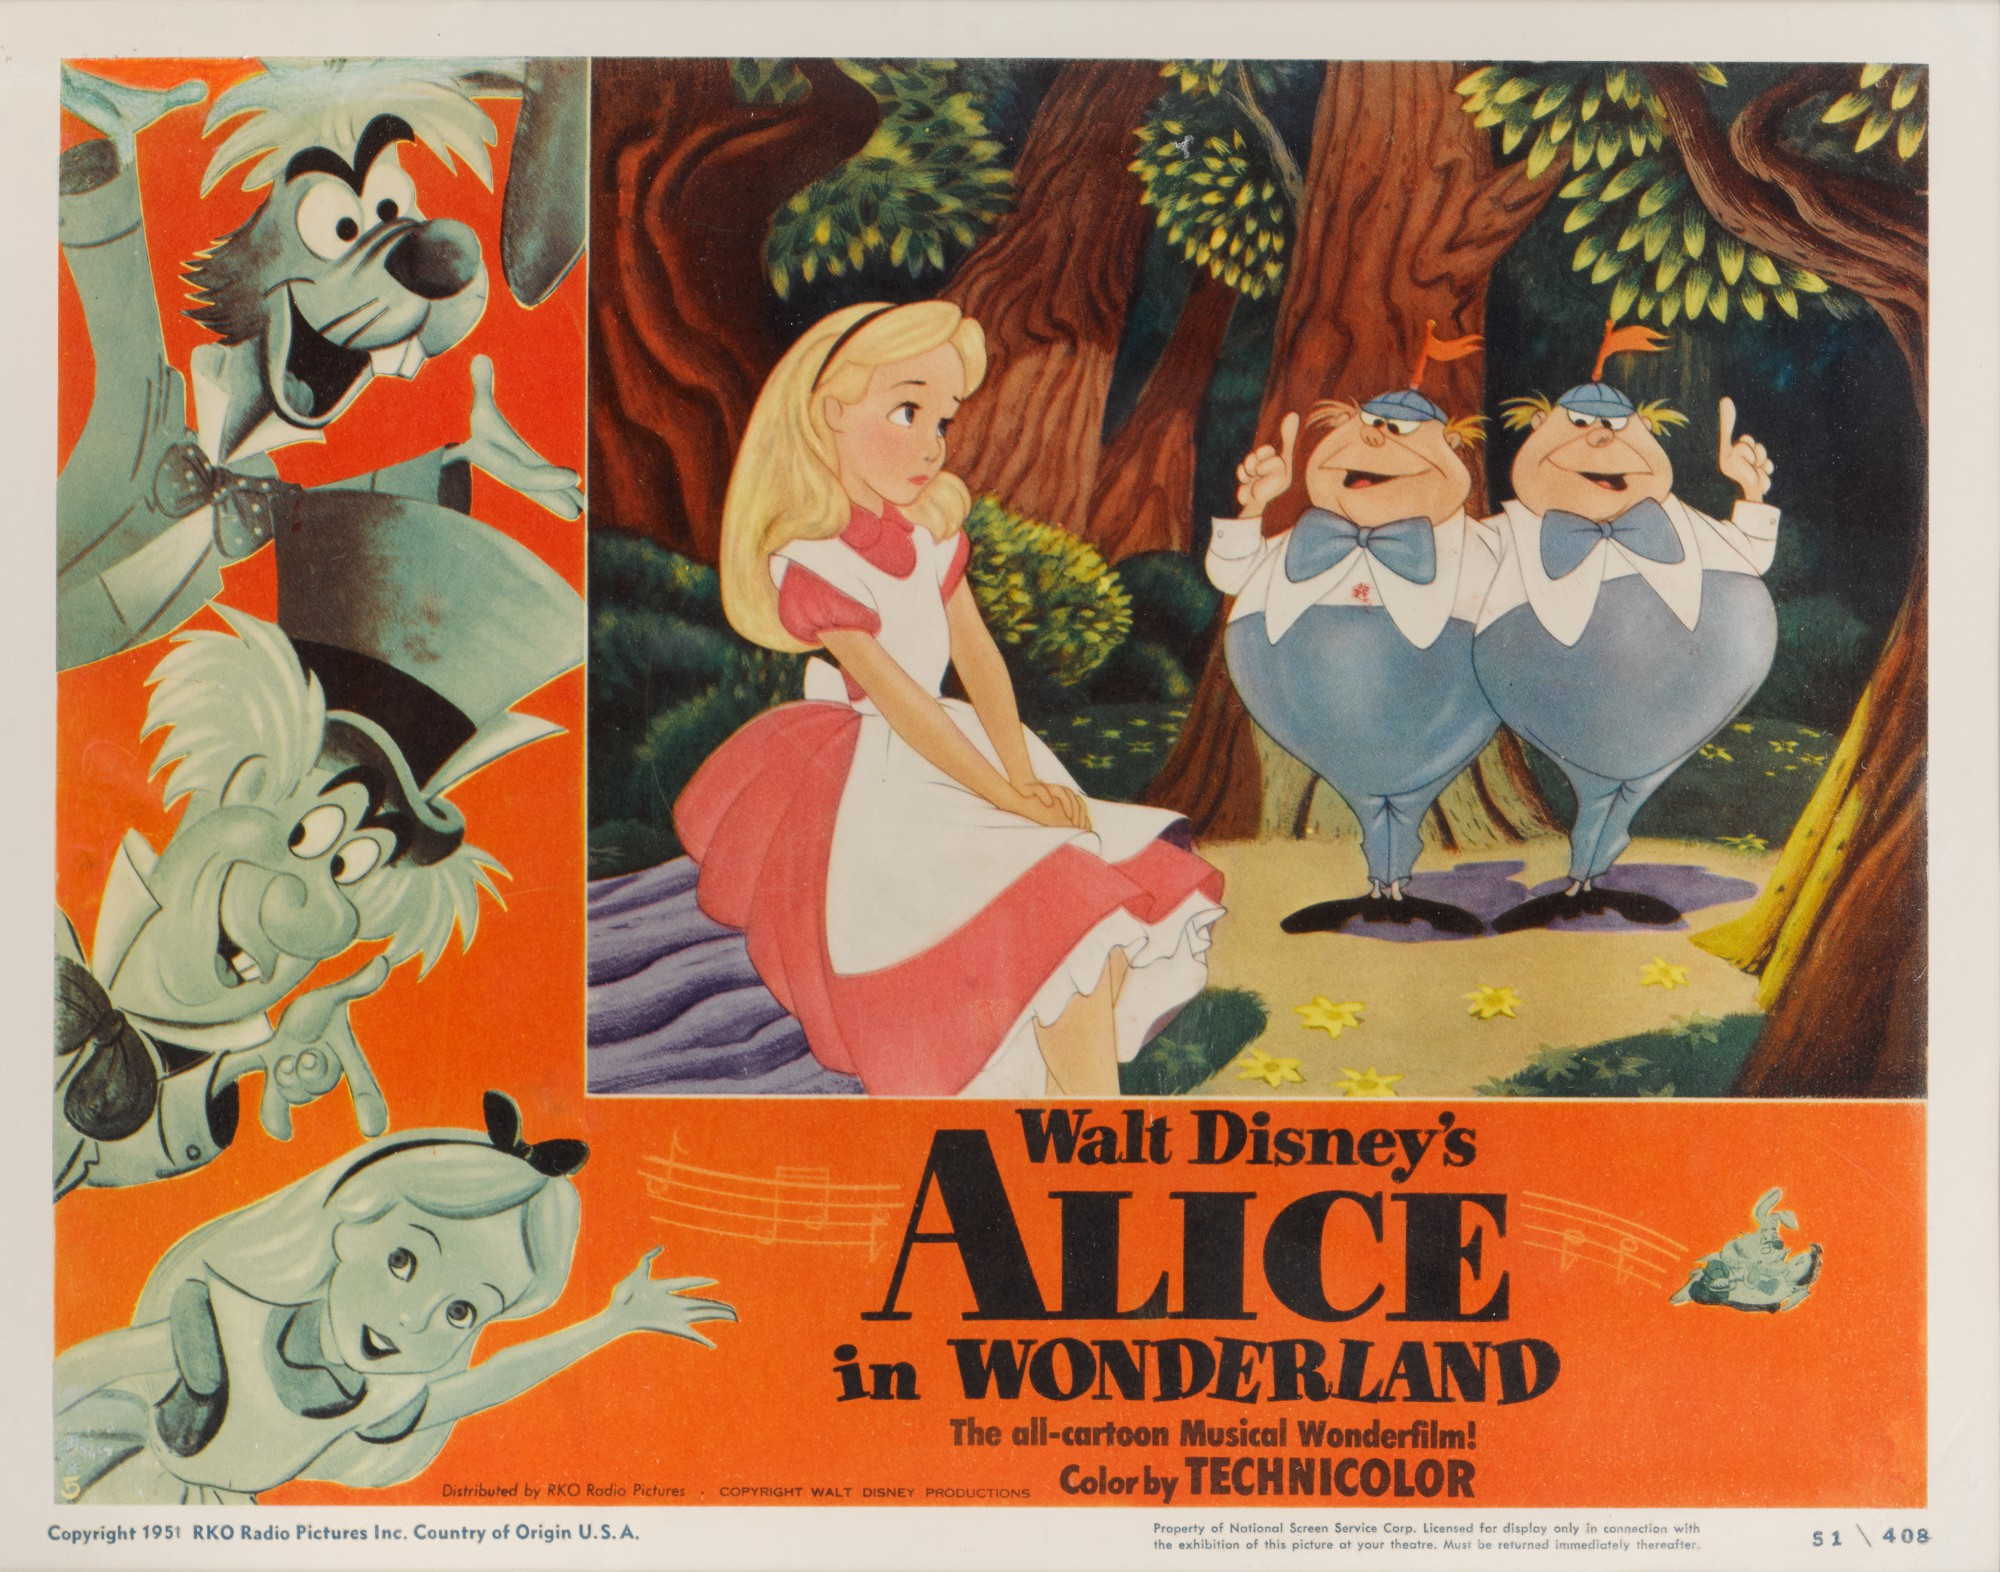 ALICE IN WONDERLAND (1951) LOBBY CARD, US